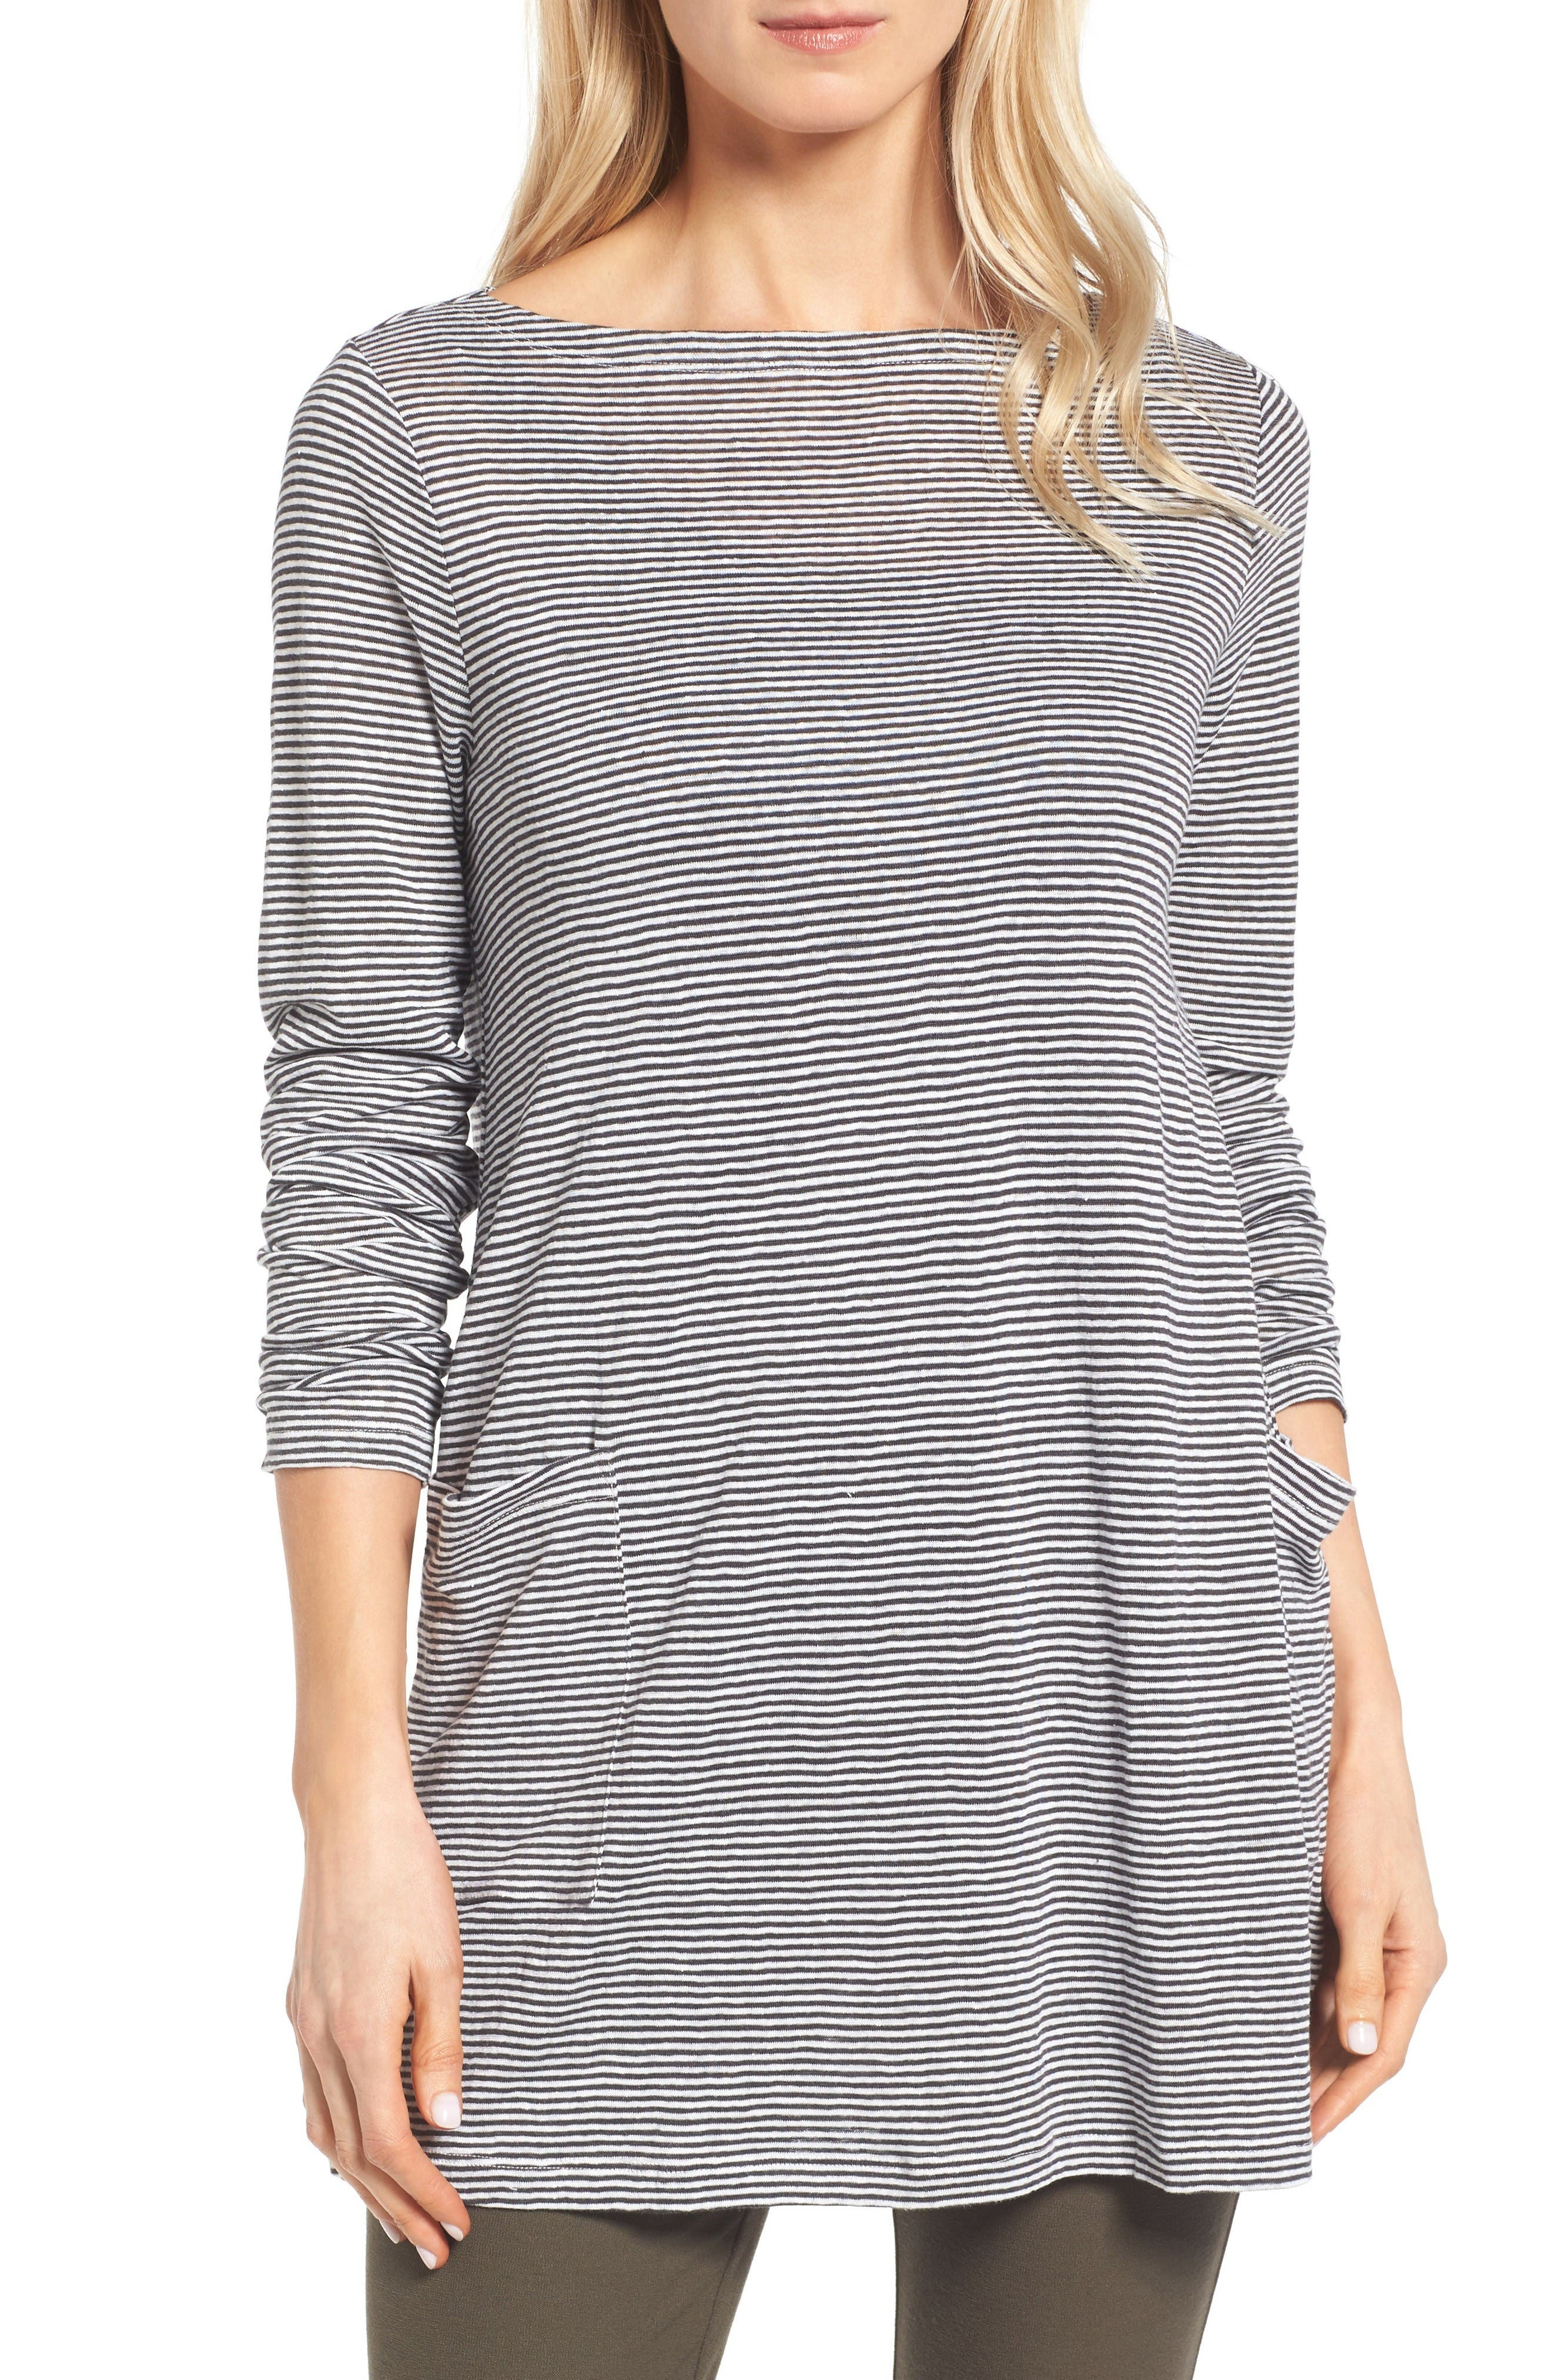 Alternate Image 1 Selected - Eileen Fisher Organic Linen Knit Tunic